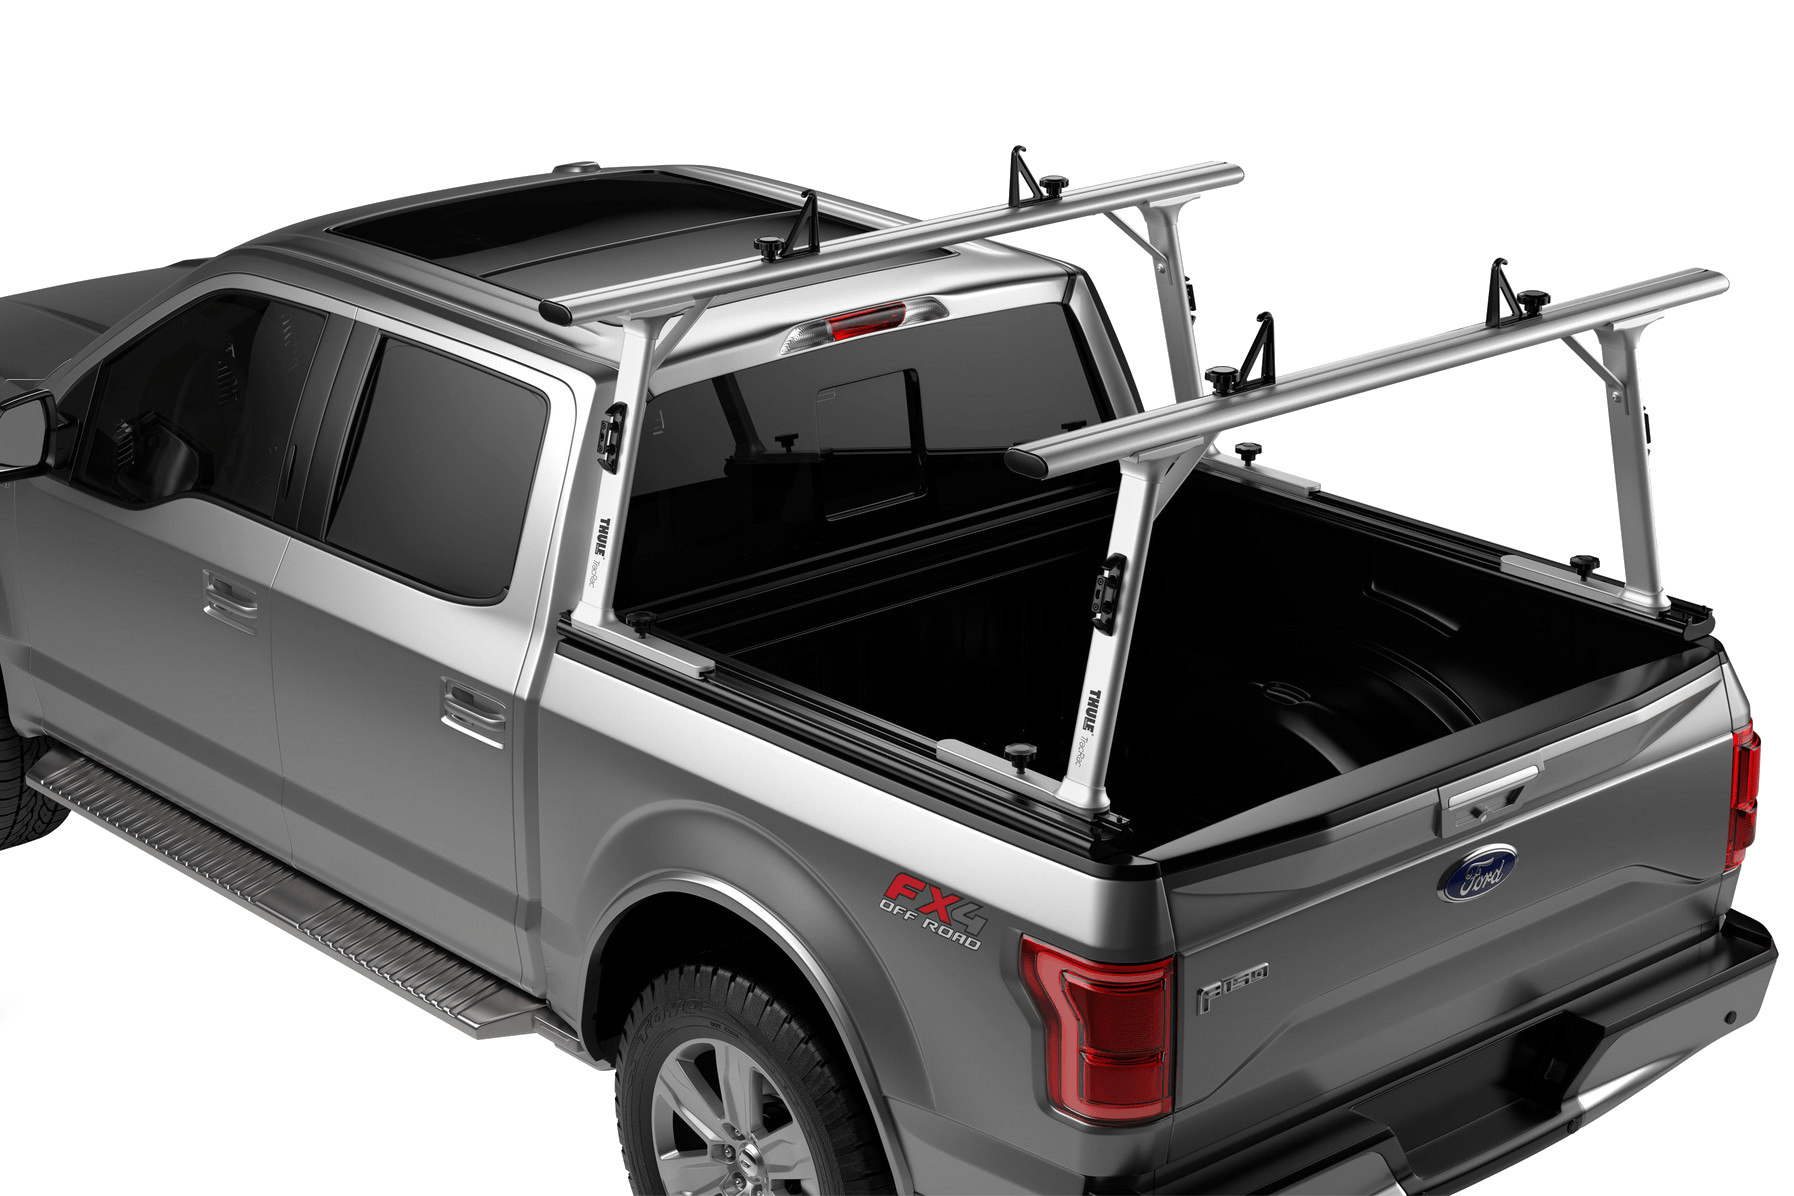 Thule TracRac adjustable truck rack side view installed on a view.